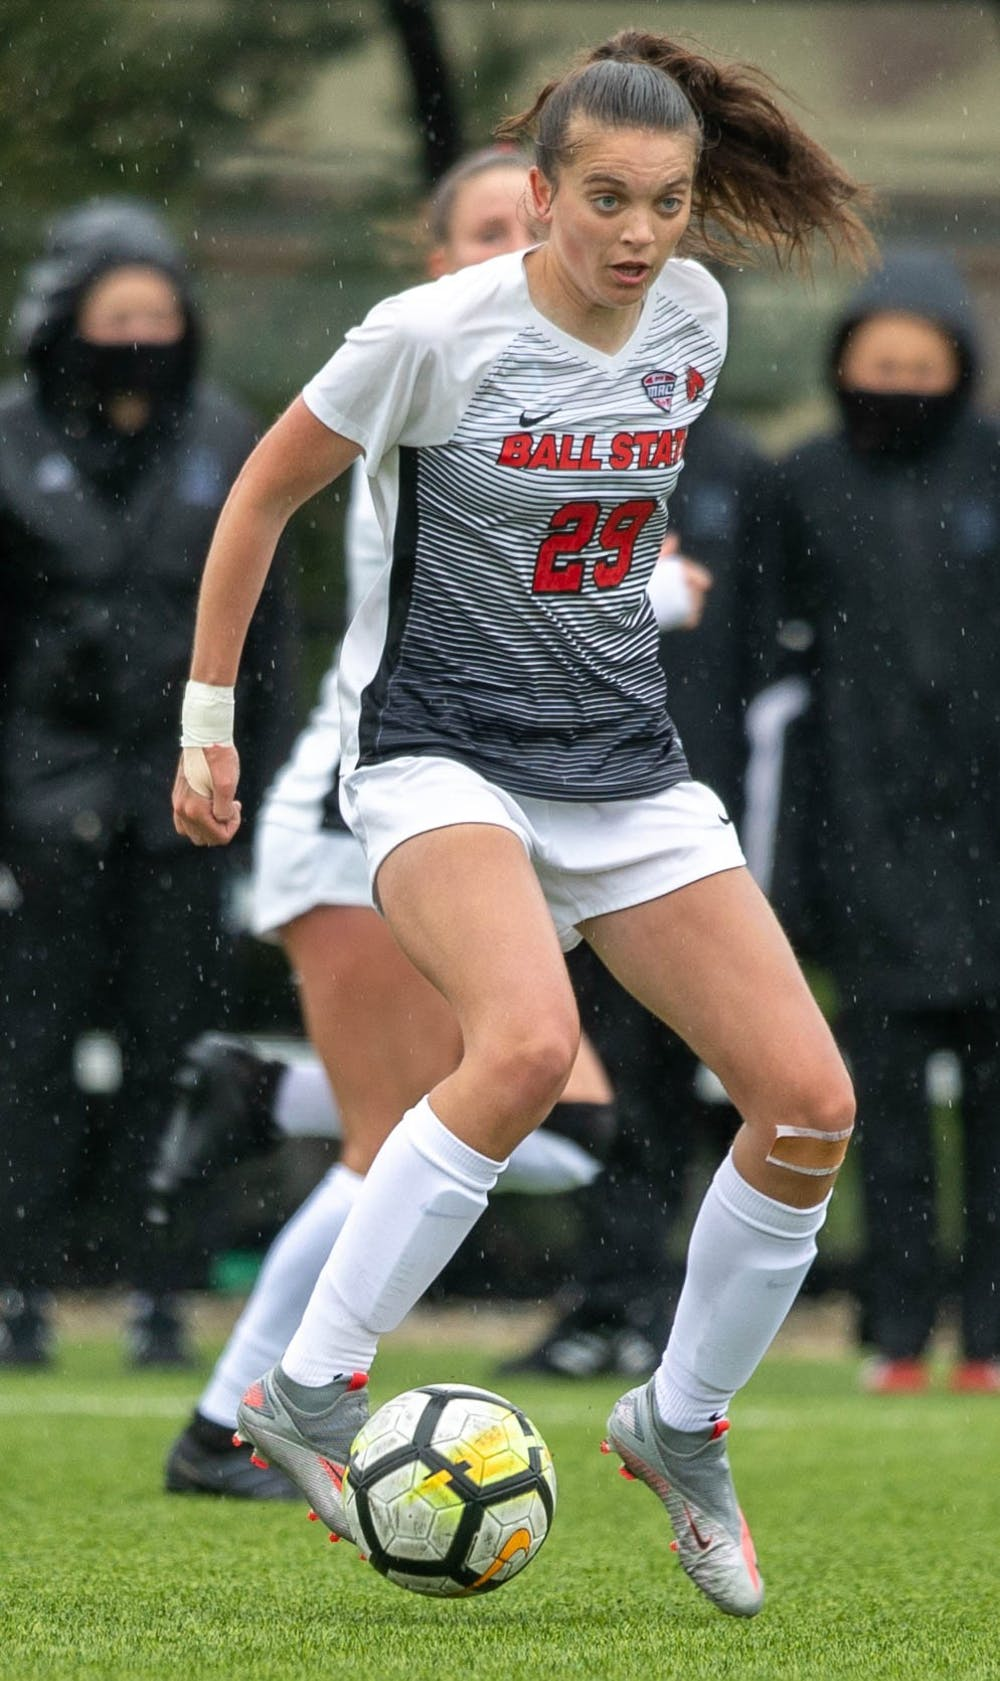 Redshirt junior midfielder Nicky Potts kicks the ball April 11, 2021, at Briner Sports Complex. The Cardinals beat the Eagles 2-1 to become the Mid-American Conference West Division champions. Jaden Whiteman, DN